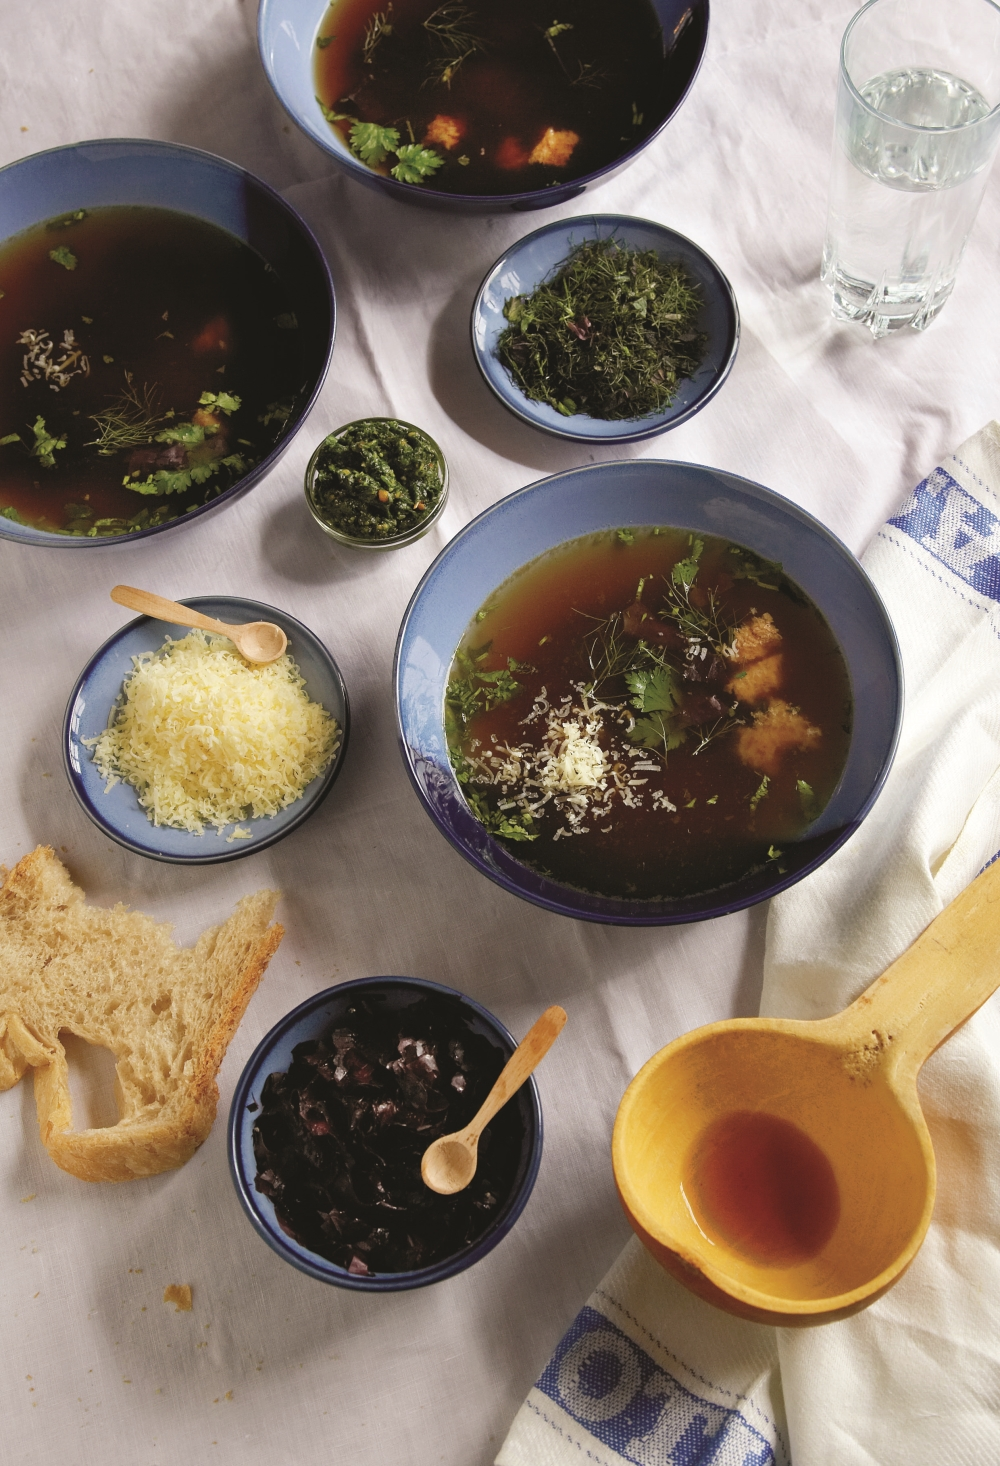 Broth served with herbs, cheese and bread from Gerry Galvin